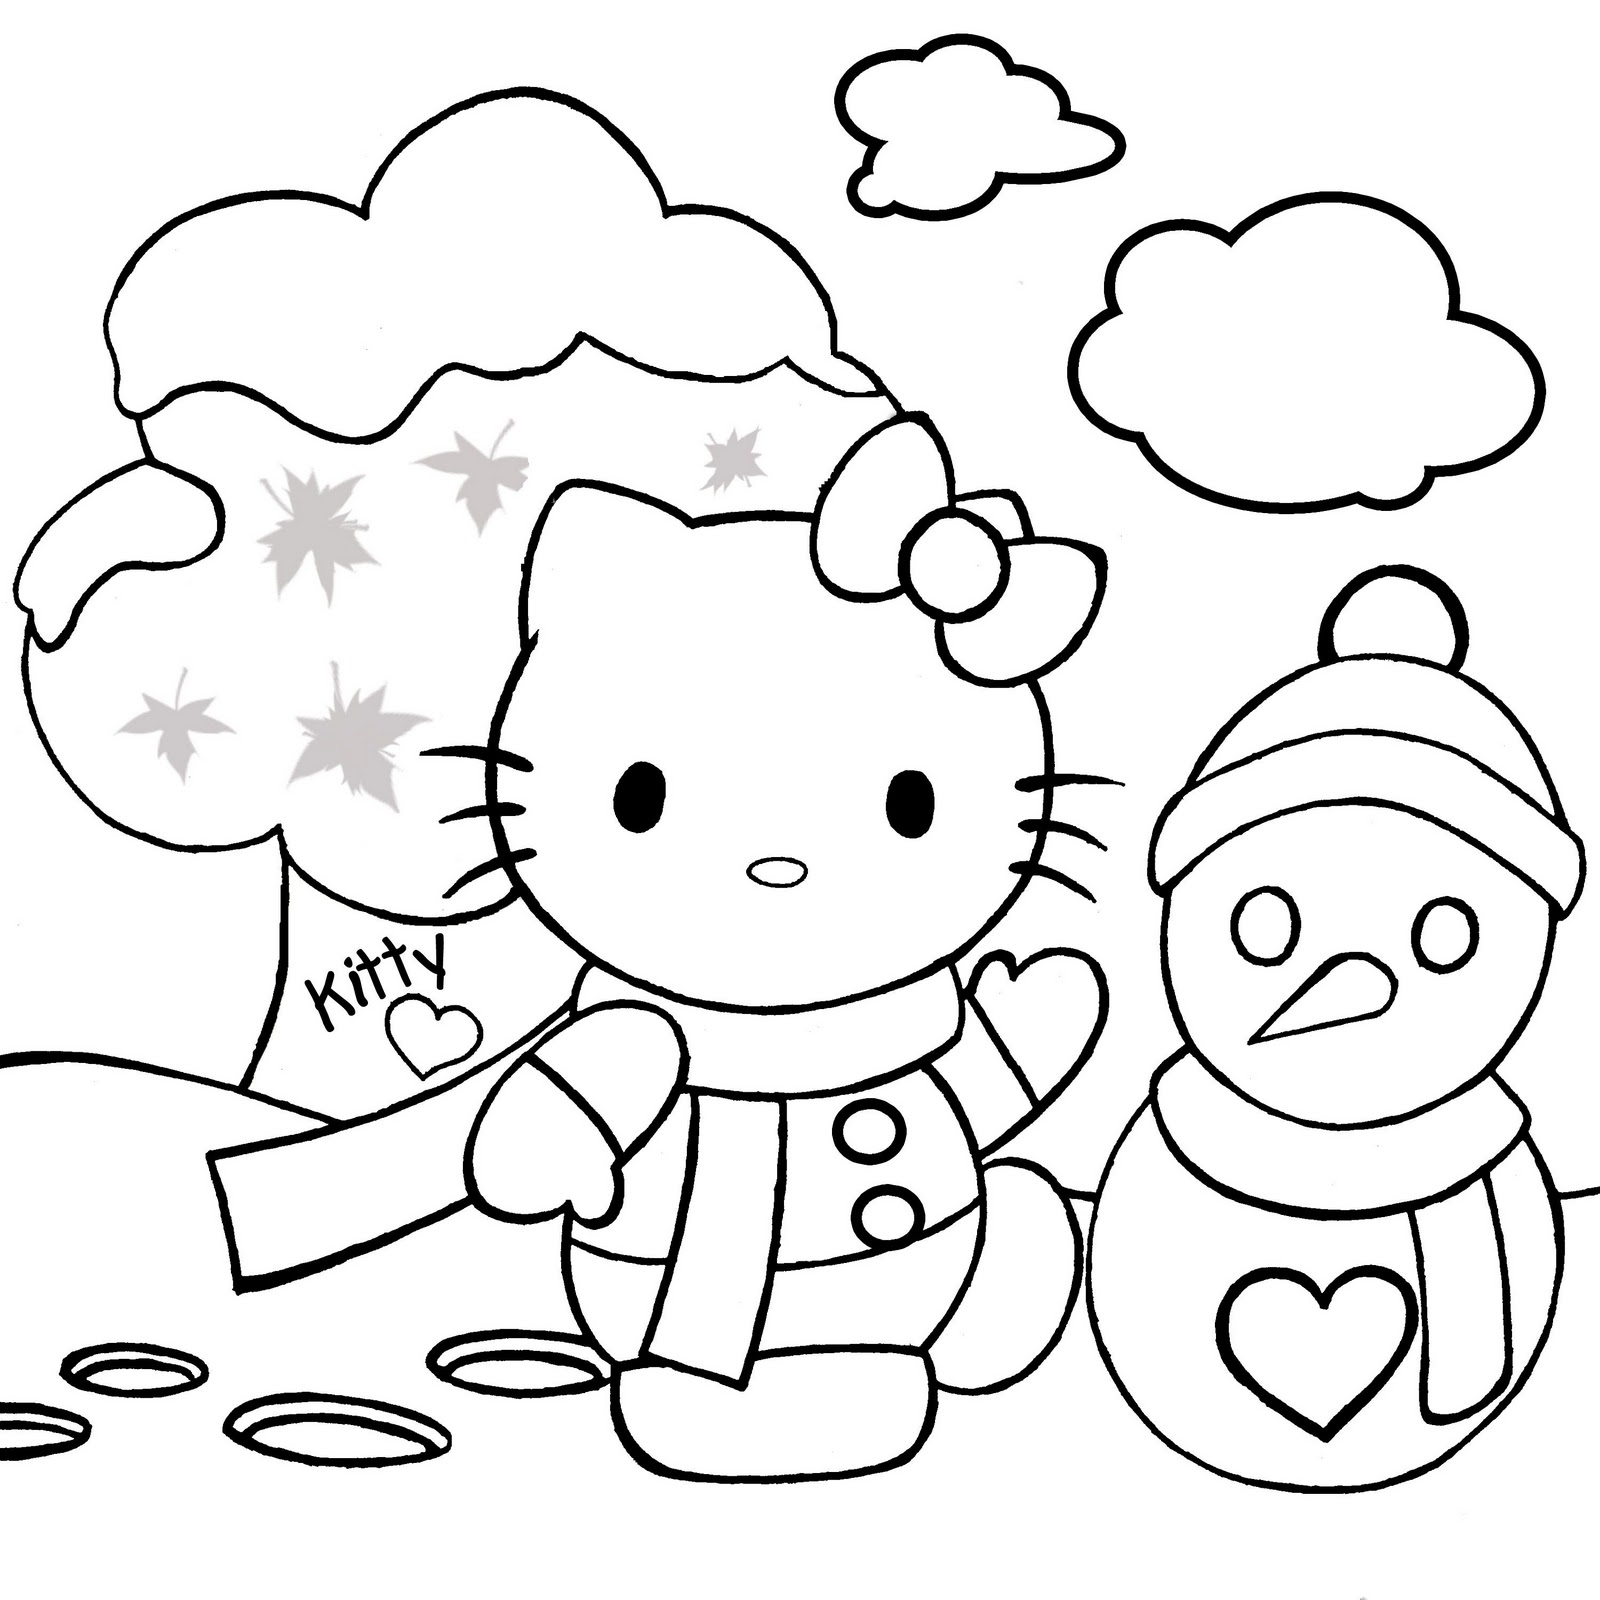 hello kitty holiday coloring pages hello kitty christmas coloring pages best gift ideas blog hello kitty coloring holiday pages